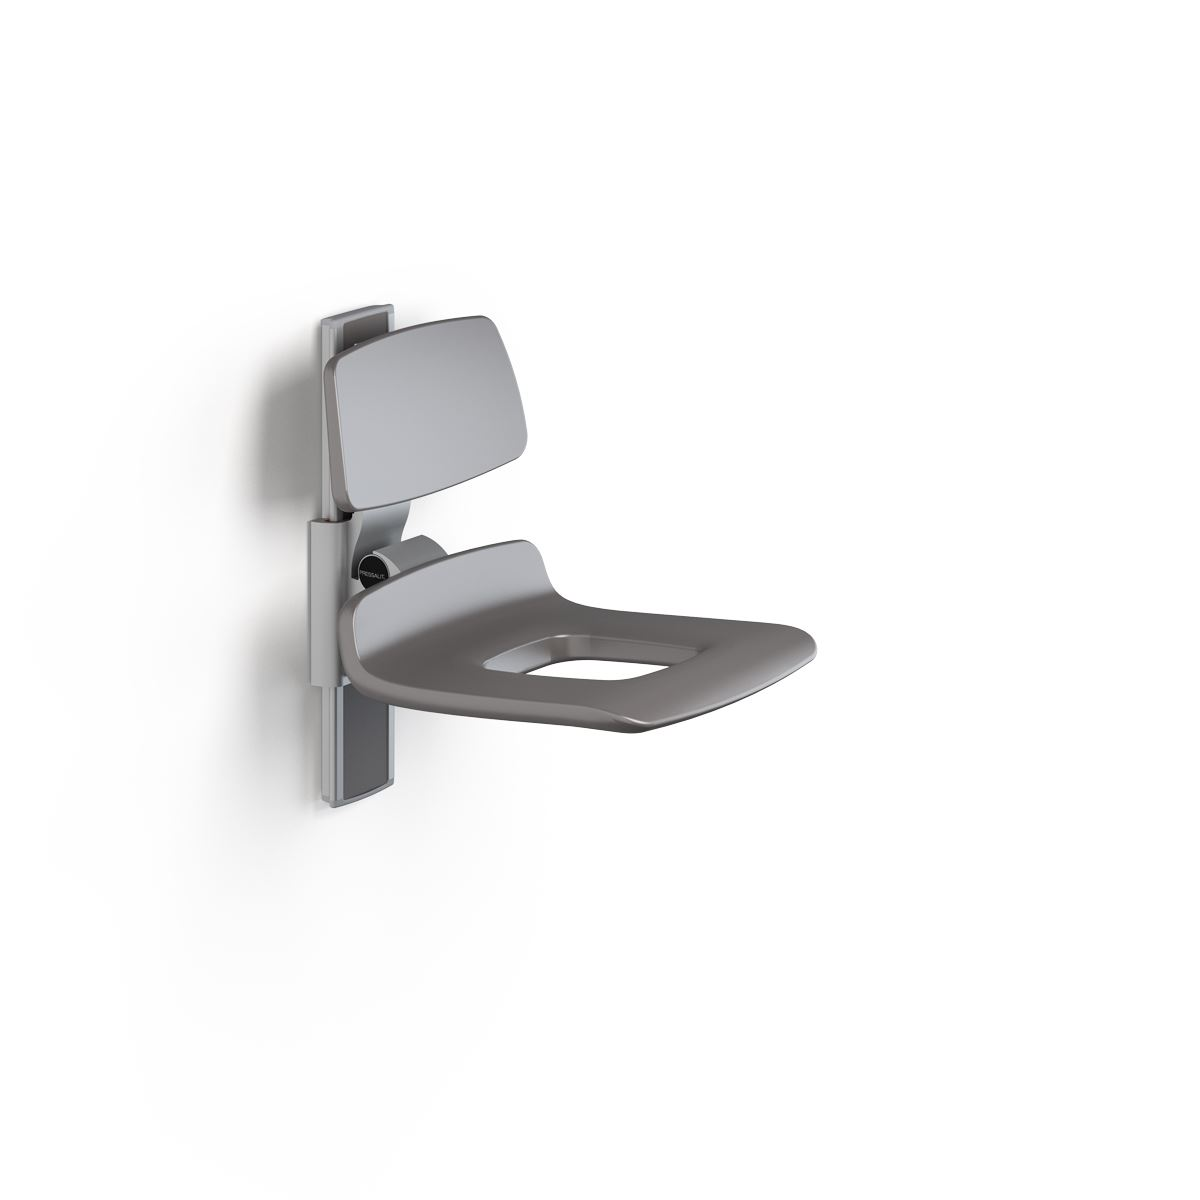 PLUS shower seat 450 with aperture, manually height adjustable